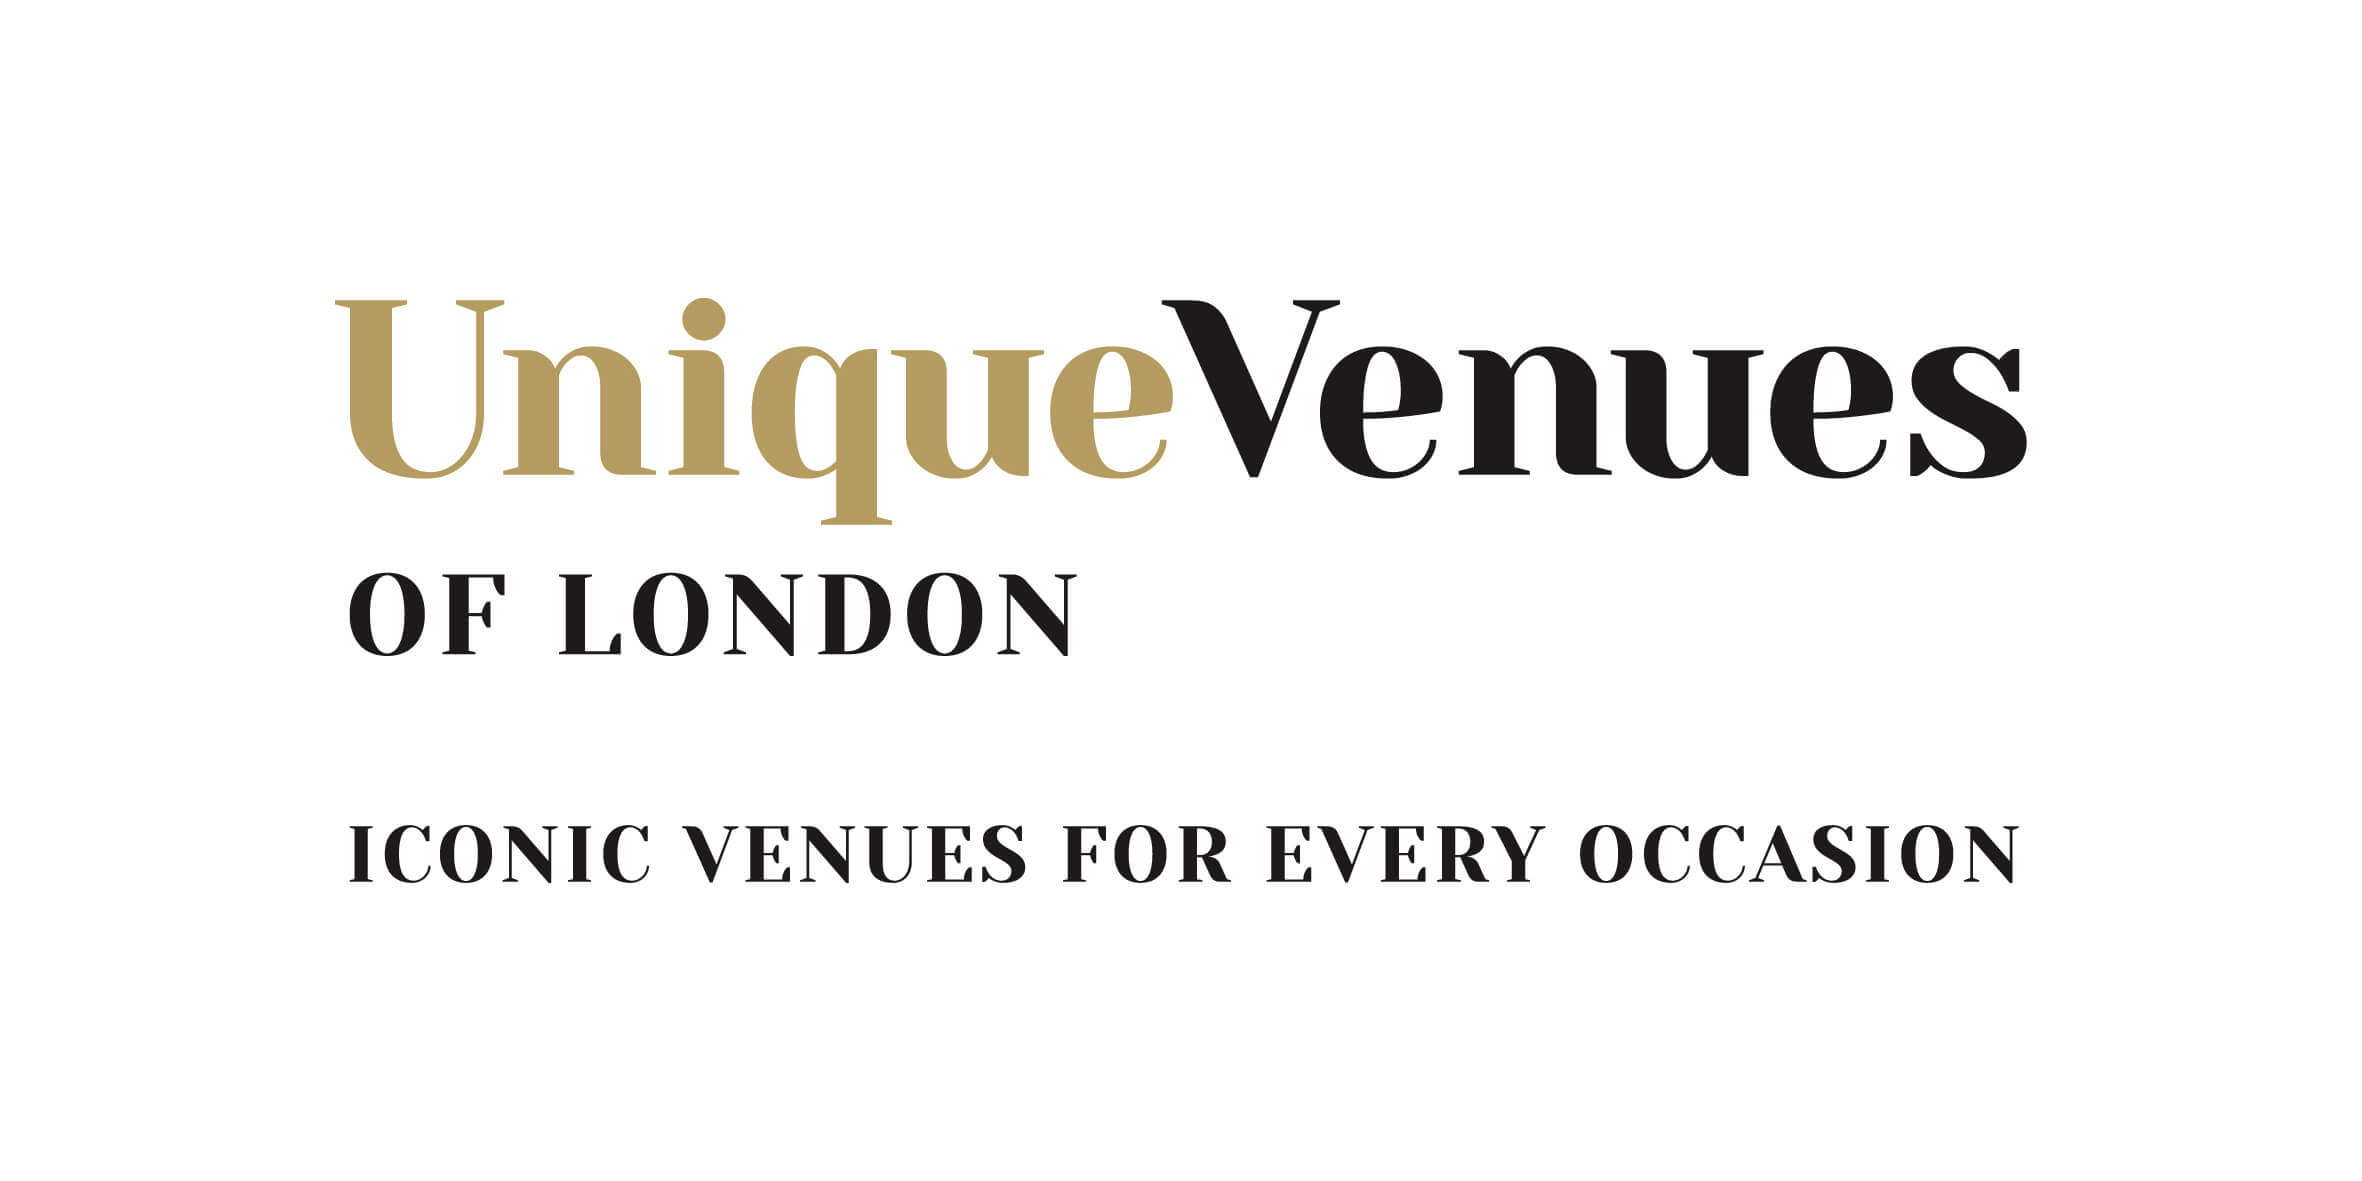 http://www.kellychandlerconsulting.co.uk/wp-content/uploads/2019/07/Unique-Venues-of-London-2362-x-1181.jpg